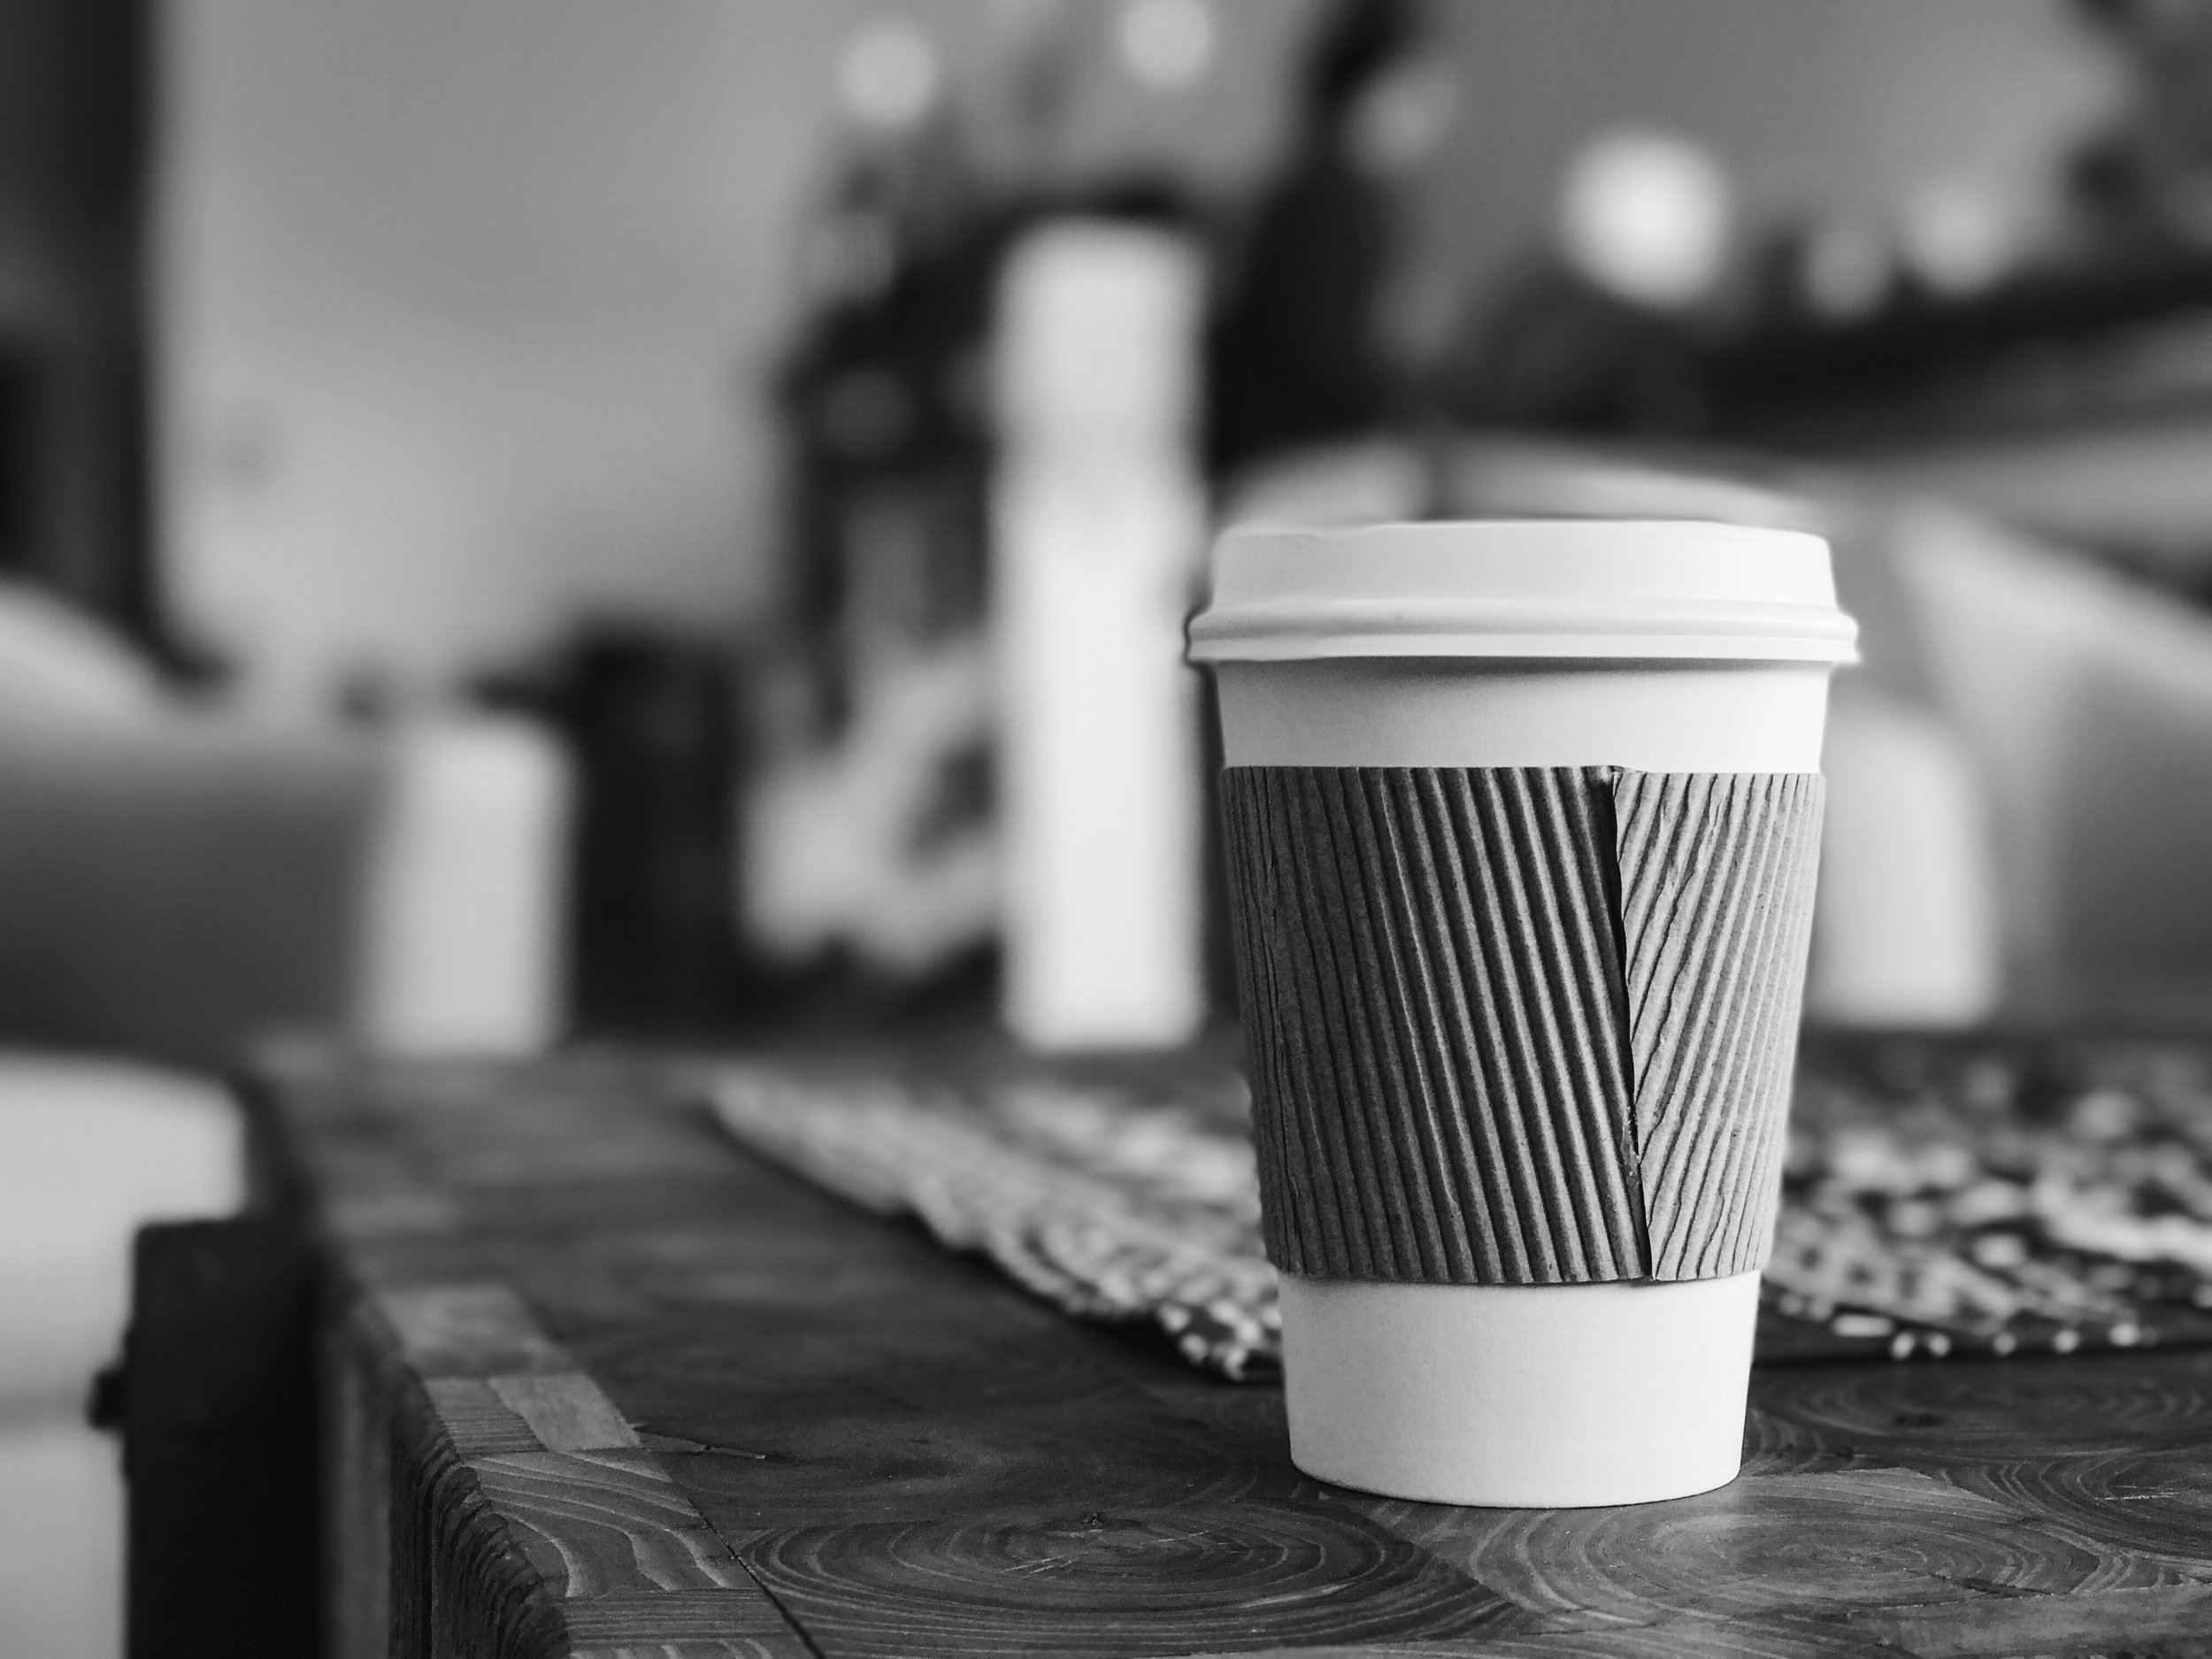 A disposable coffee cup sits on a table